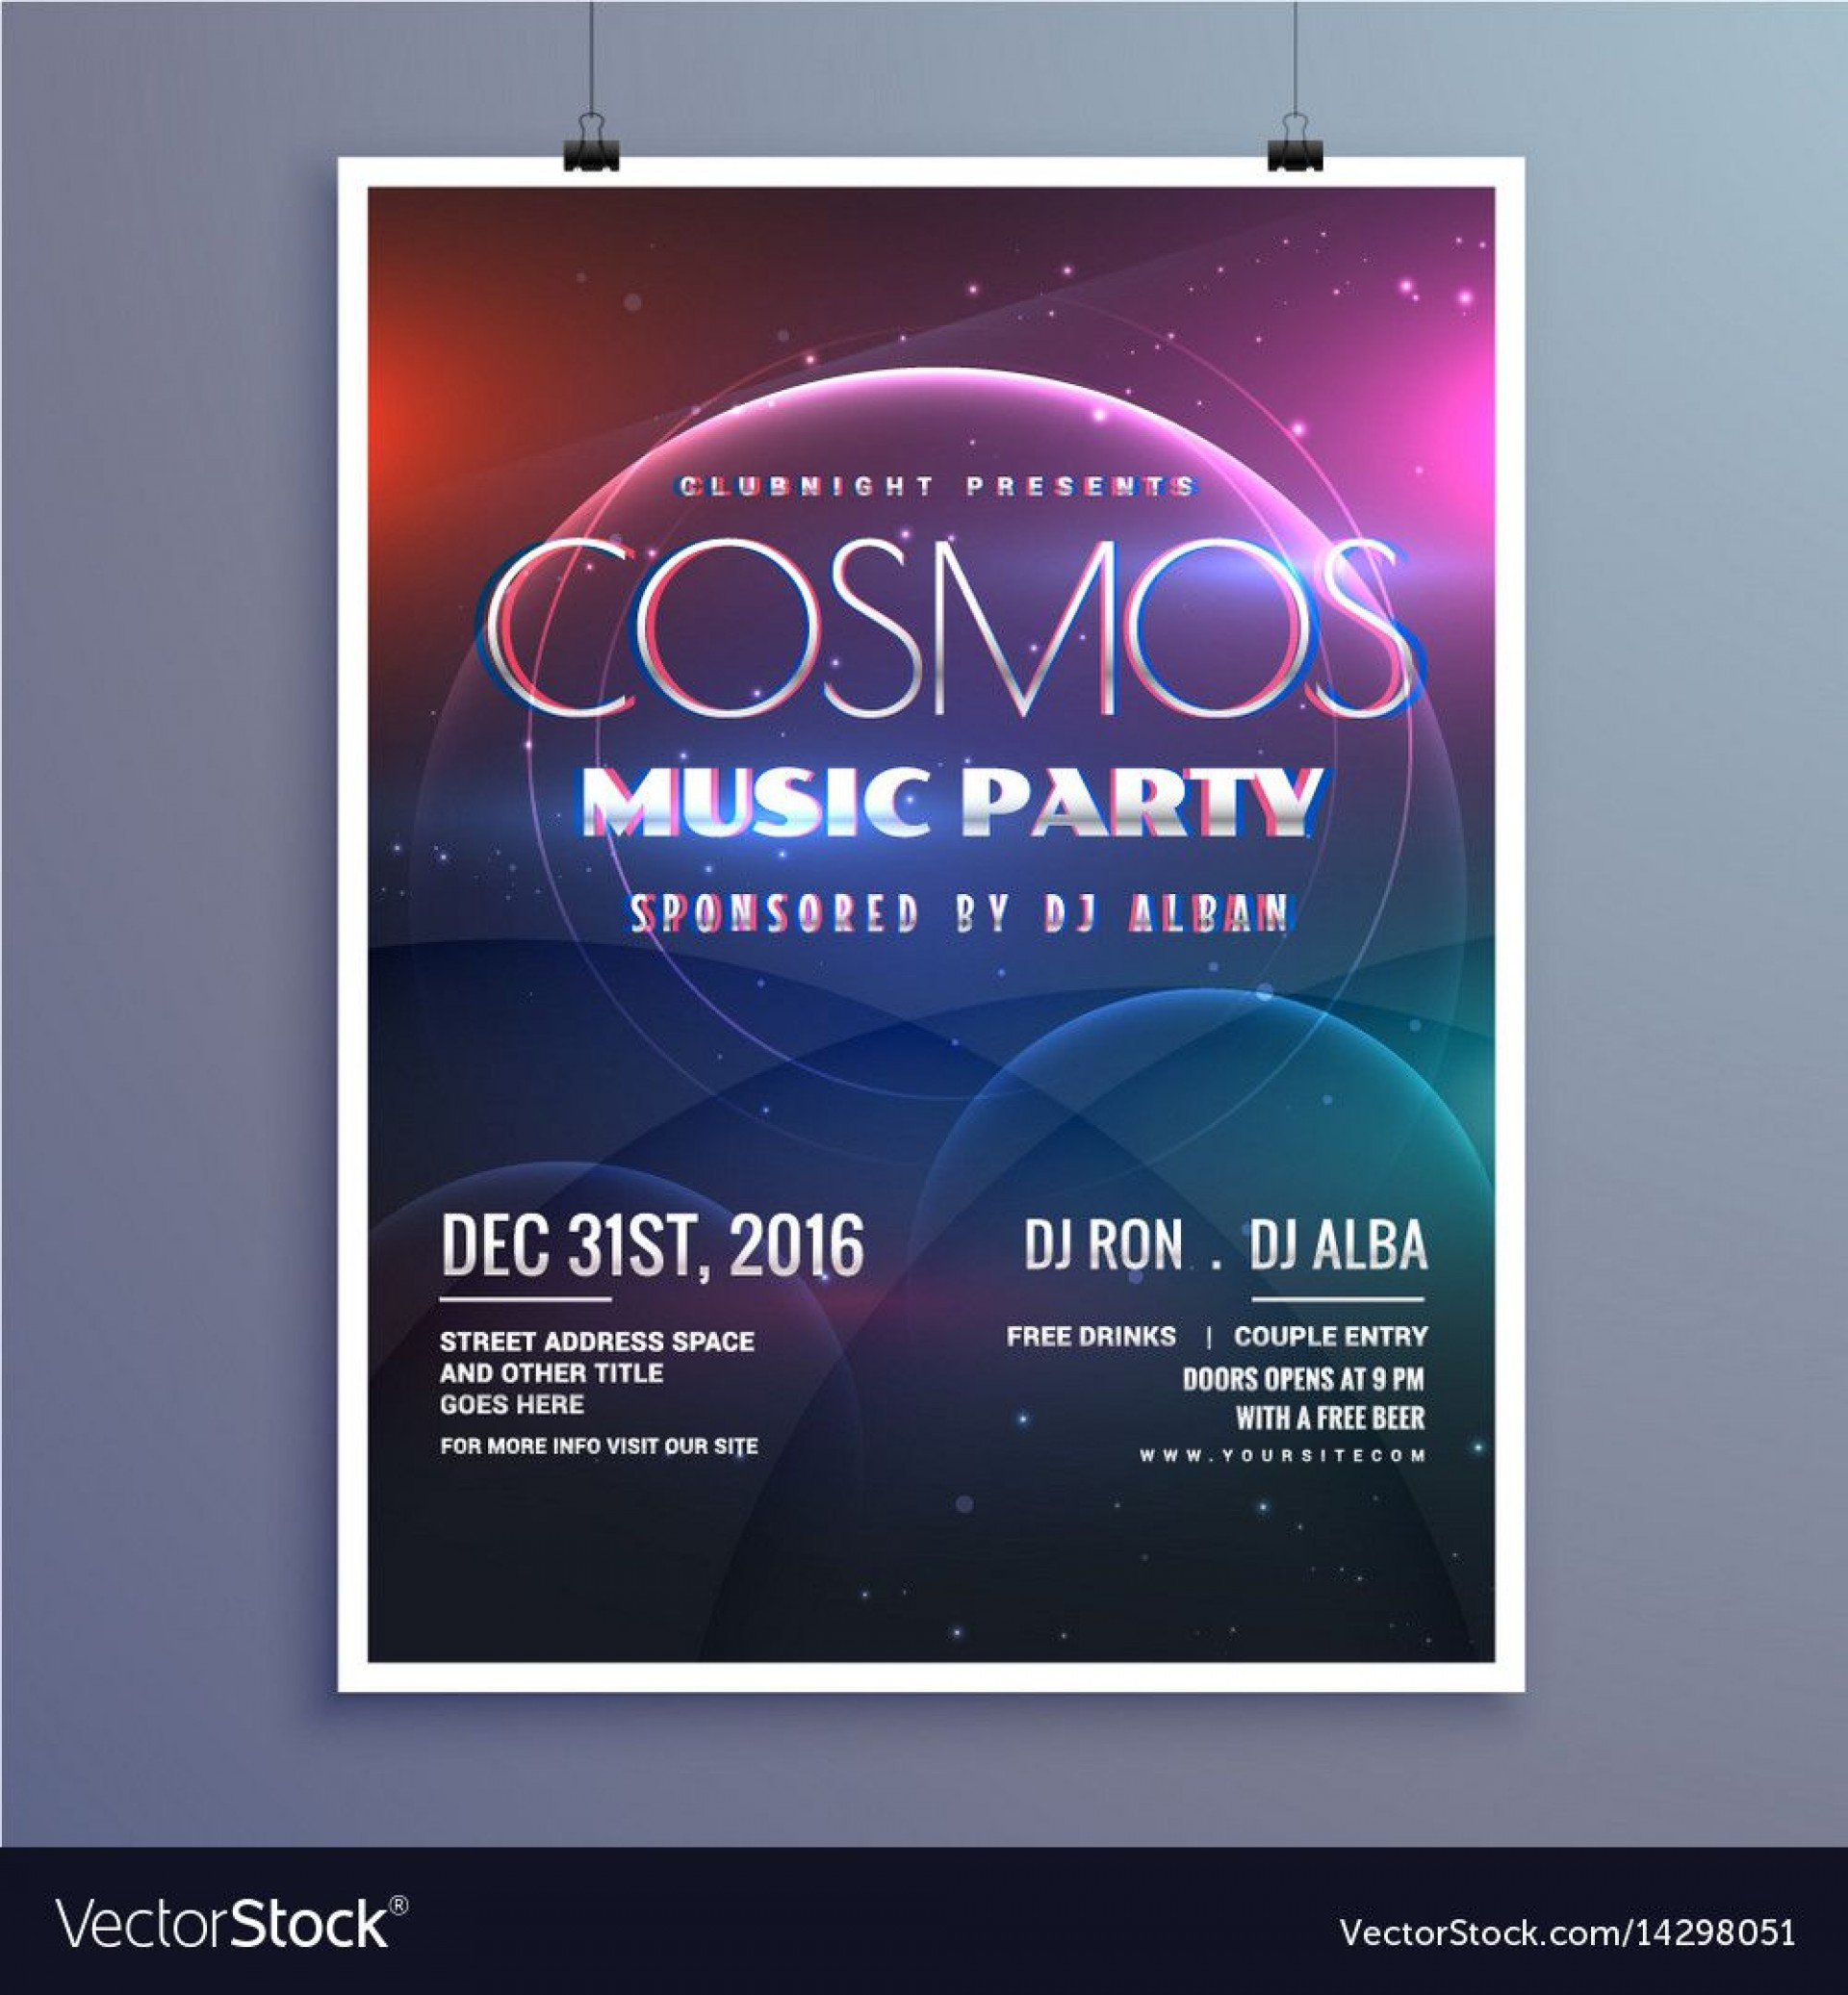 005 Magnificent Party Event Flyer Template Free Download Design 1920